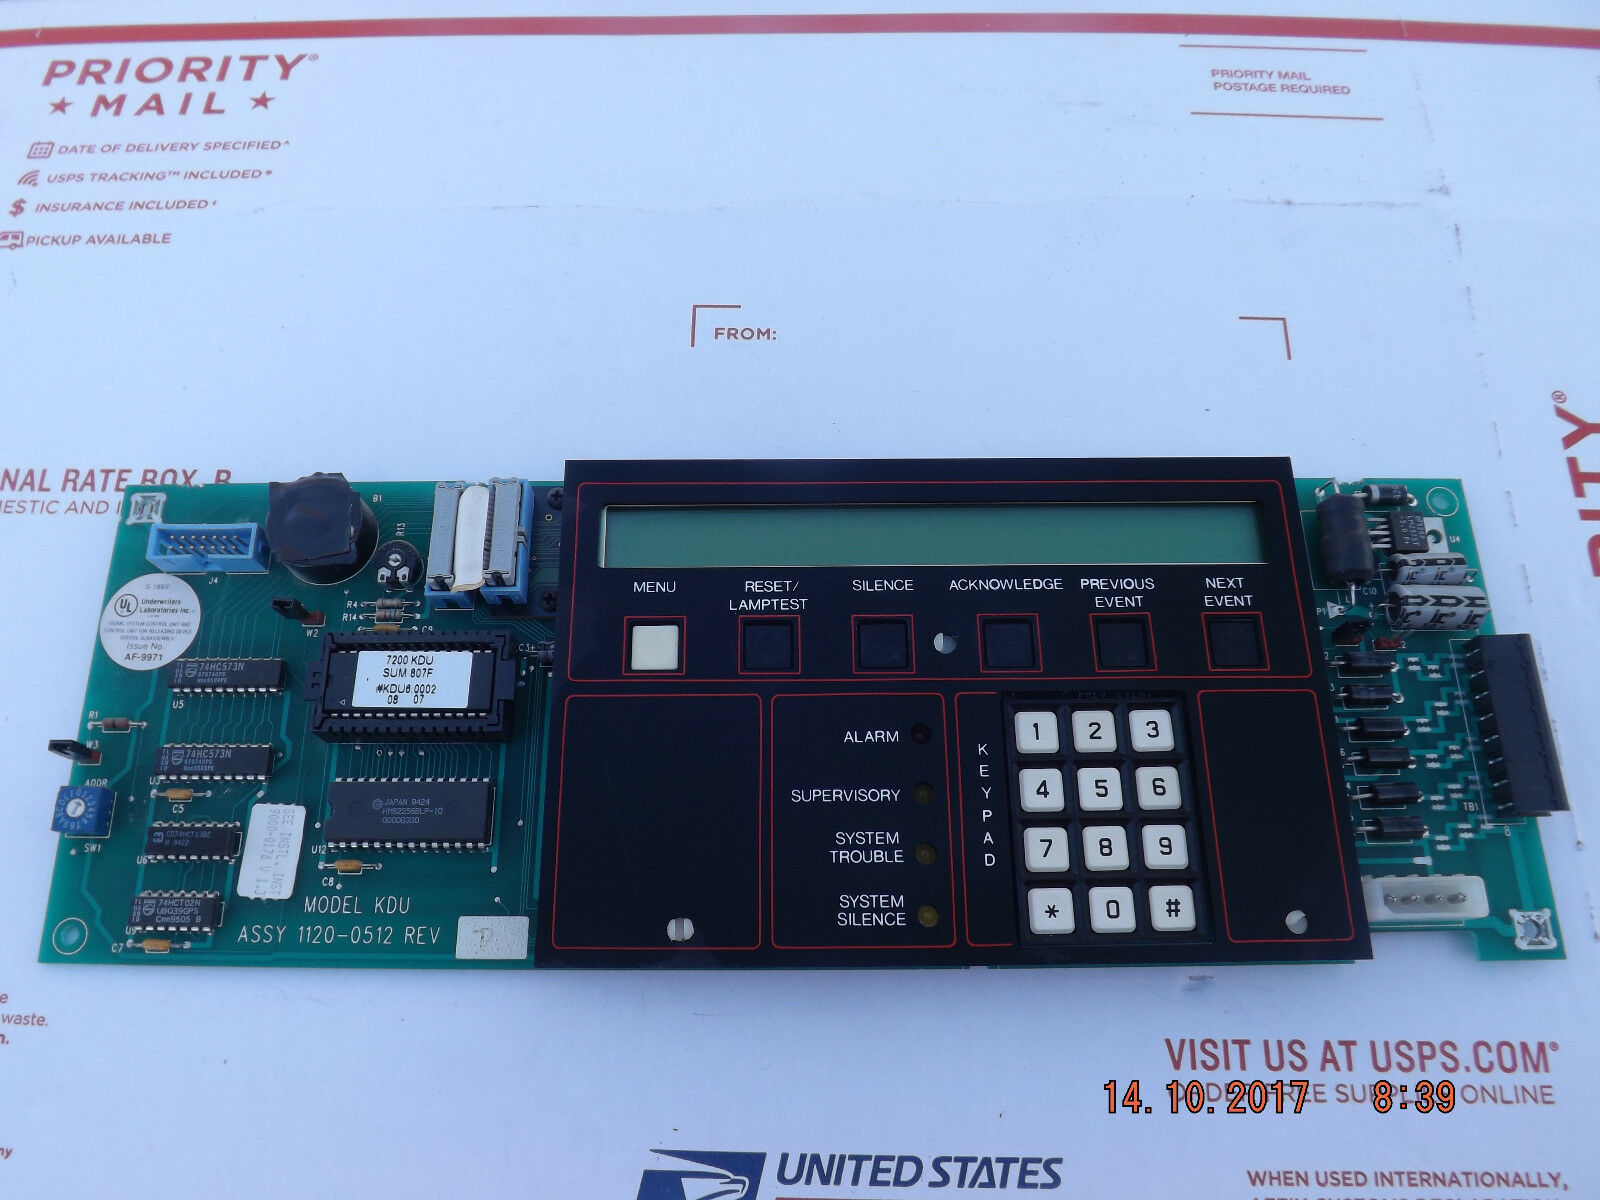 FCI Gamewell Kdu-l Keyboard Display Unit for 7200 Series Fire Alarm  1120-0569 | eBay